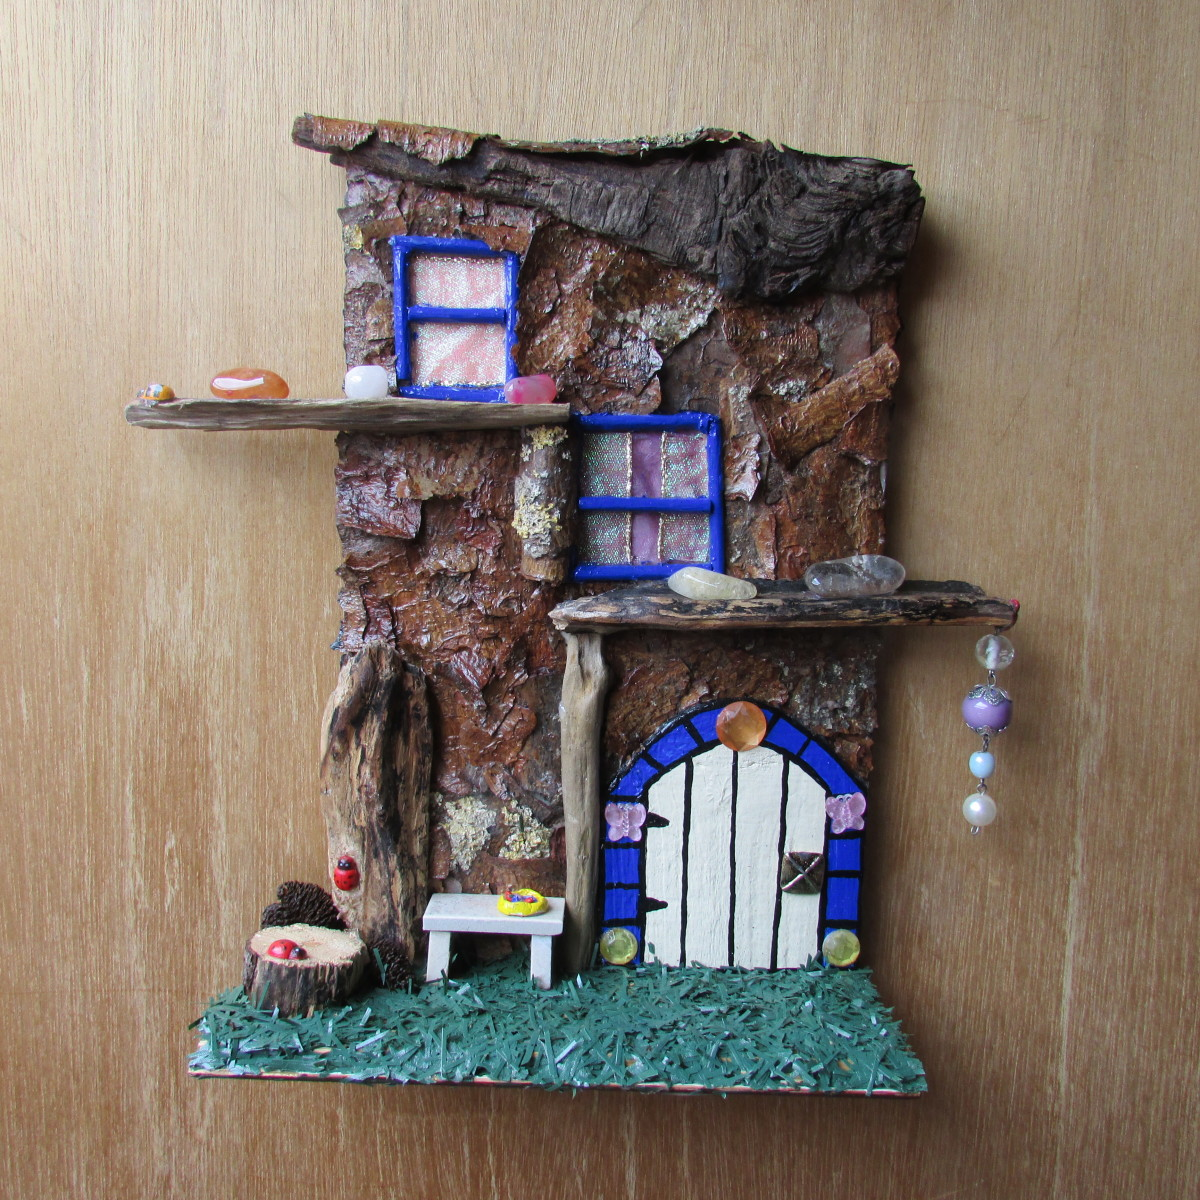 How to Make Windows and Doors for Your Fairy House